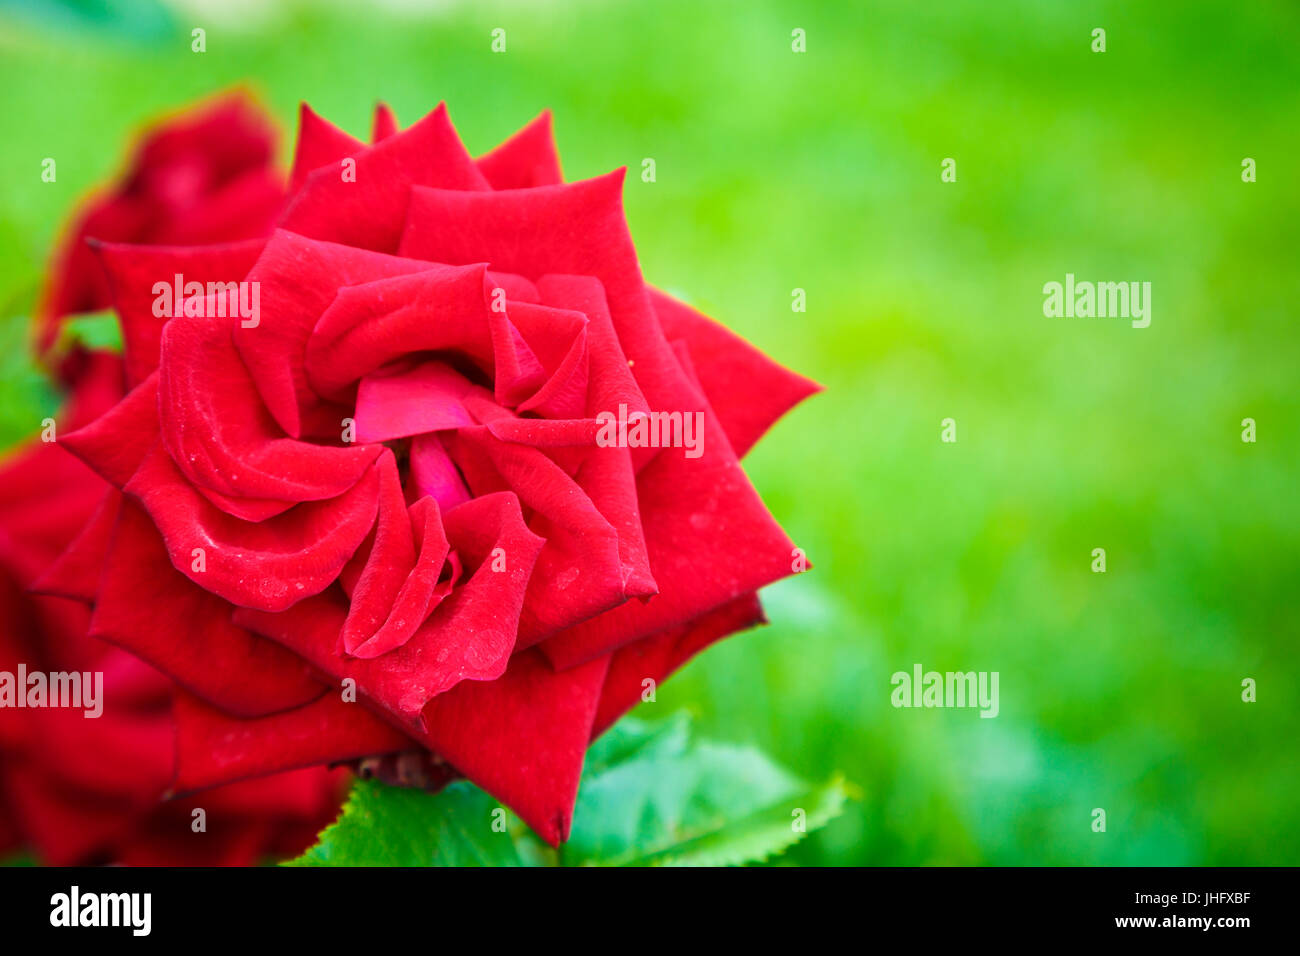 gardening red rose. - Stock Image